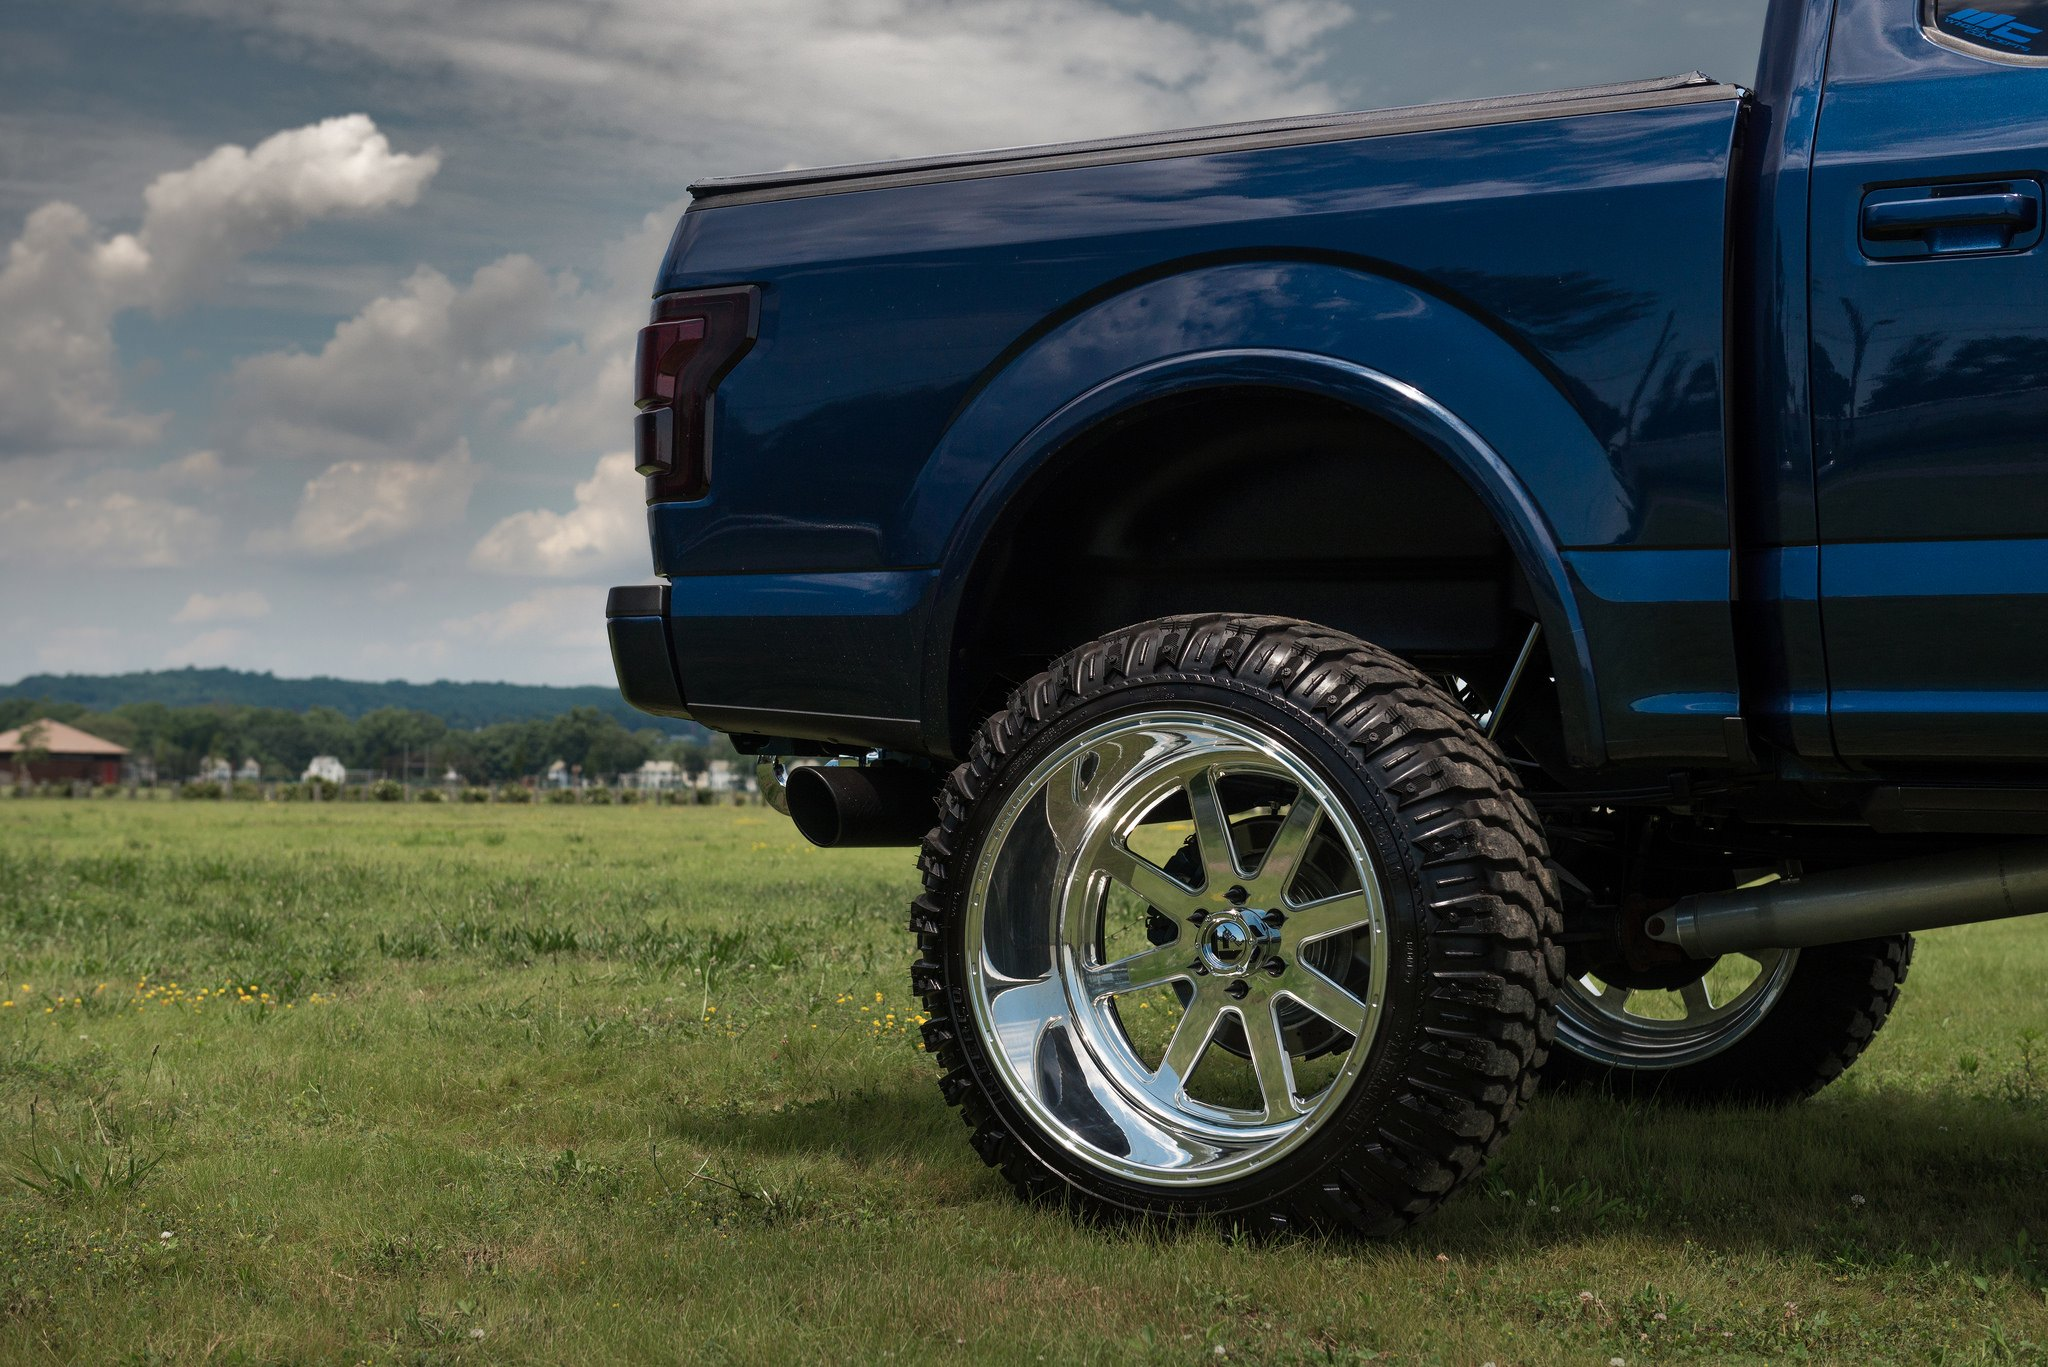 Reworked Ford F150 Truck With A Massive Lift And Chrome Fuel